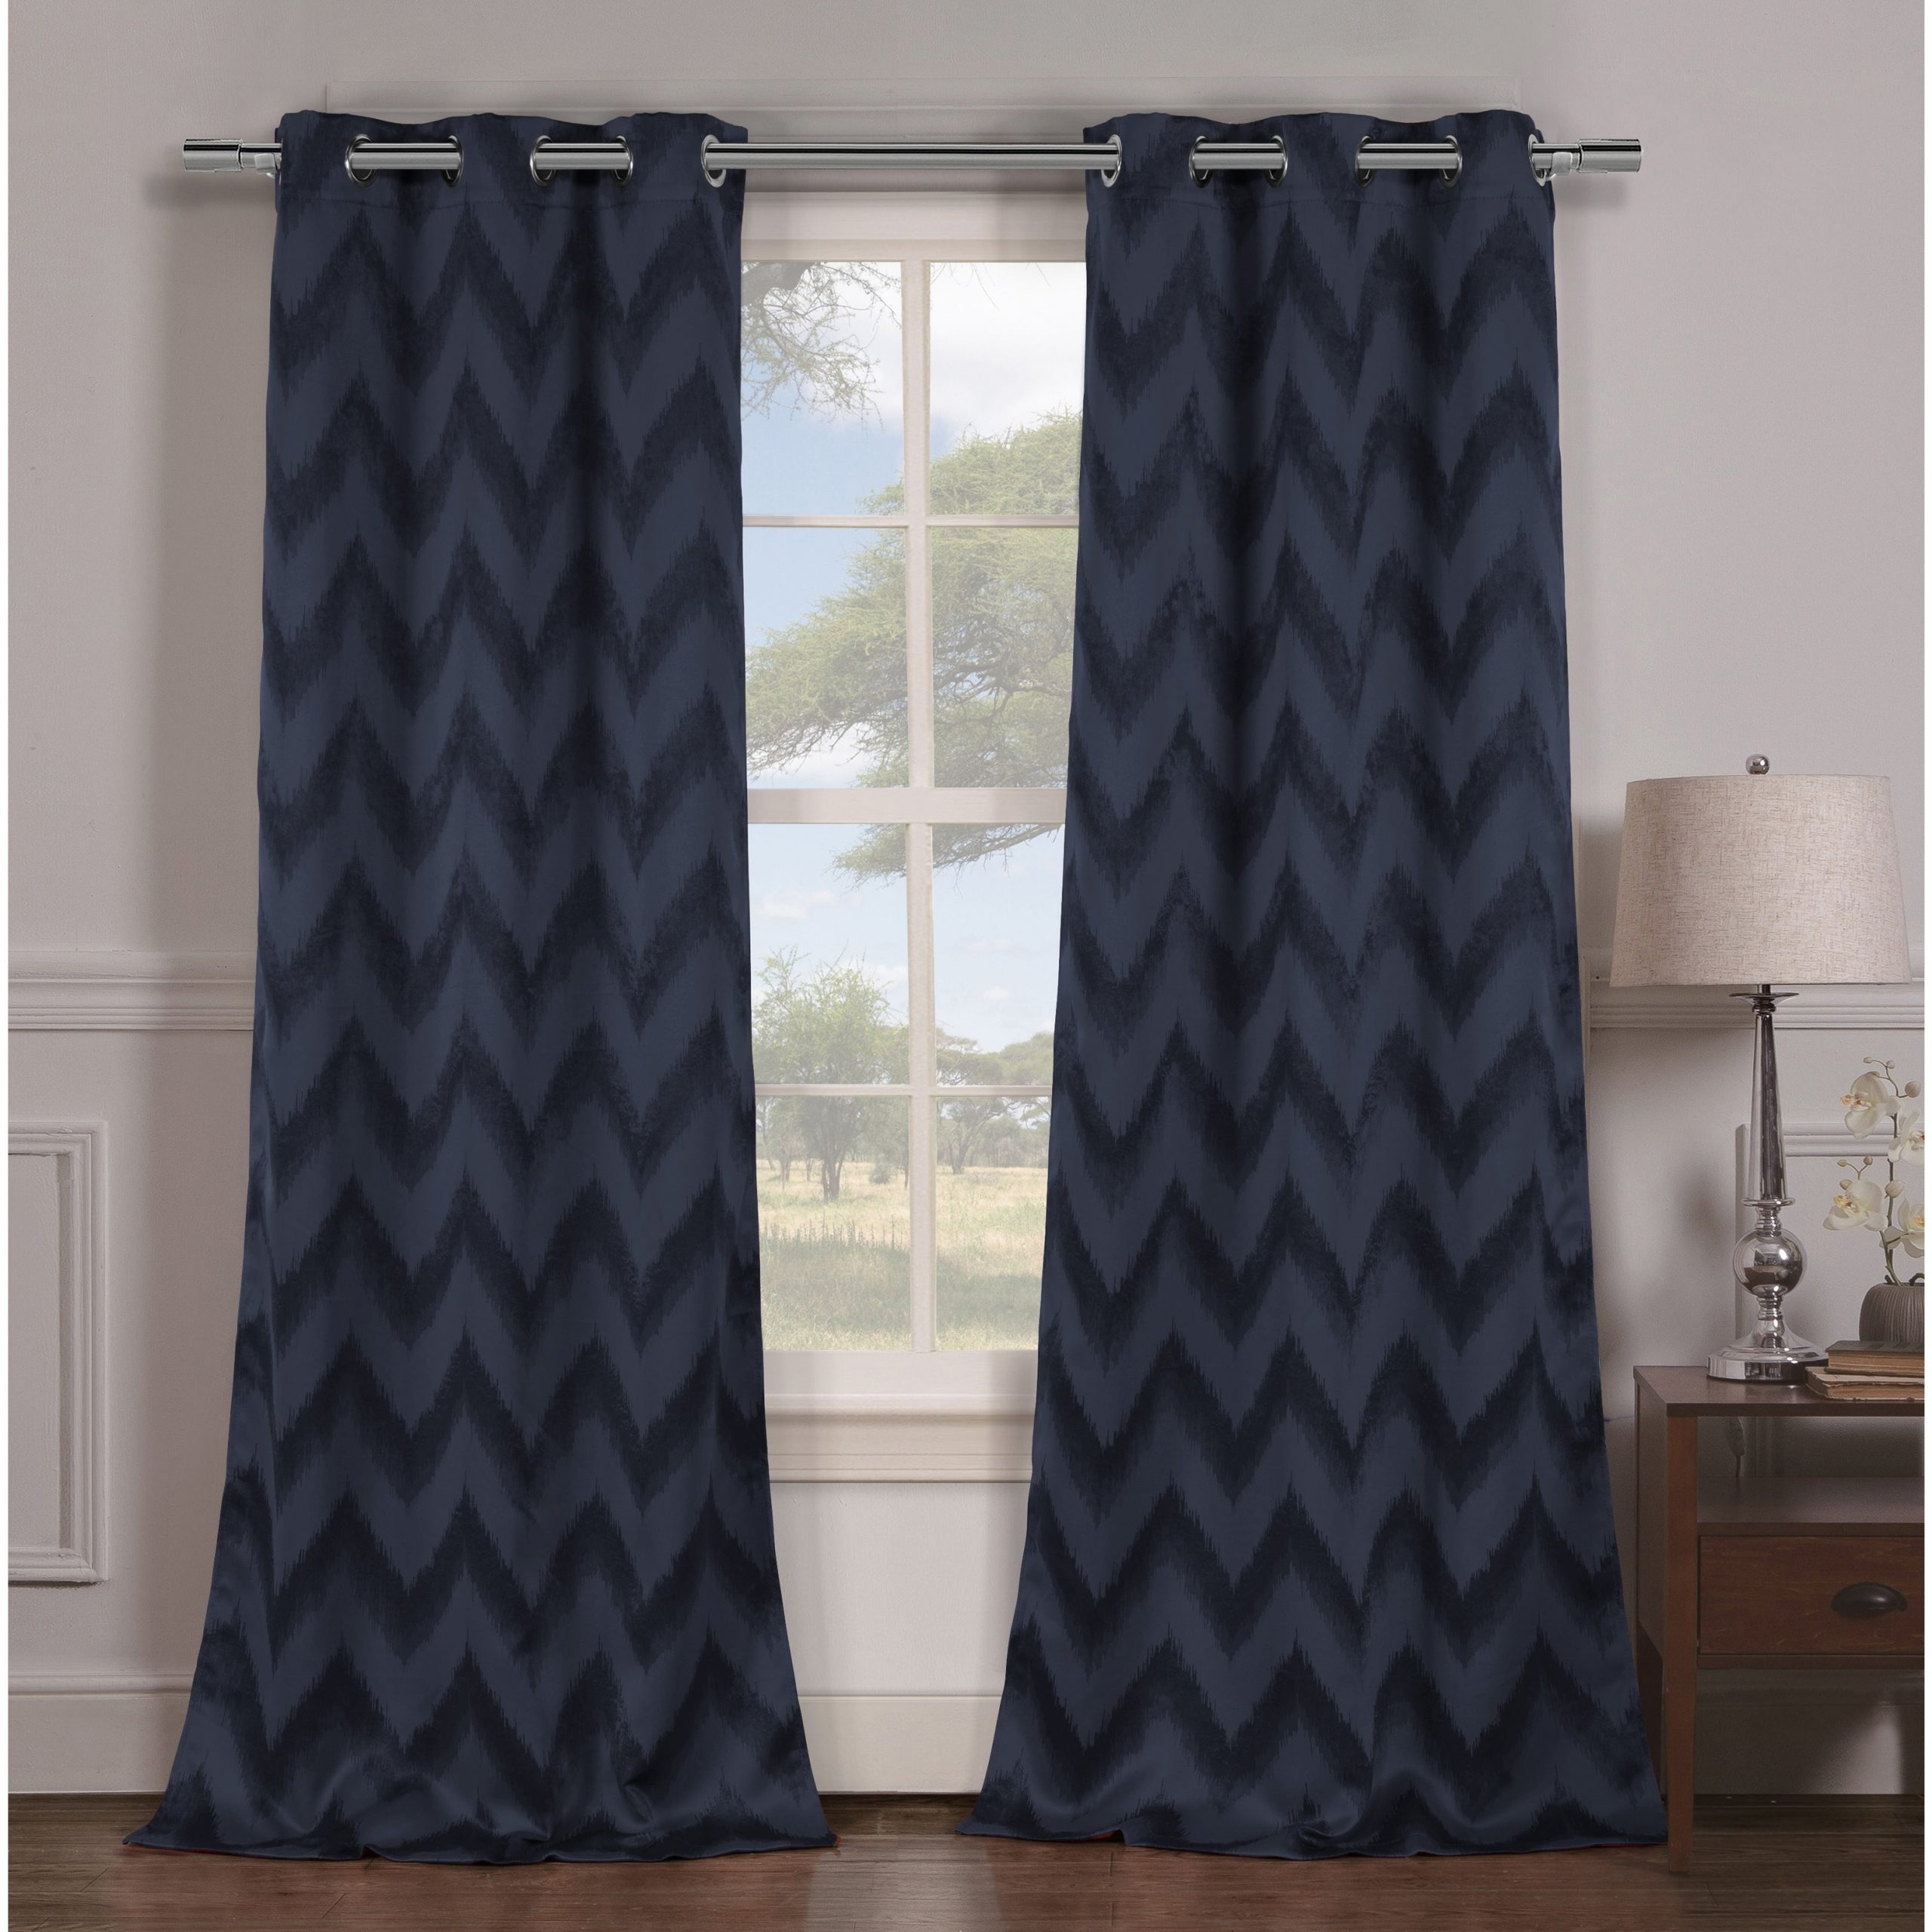 Thermal Insulated Blackout Curtain Panel Pairs Inside Fashionable Detalles Acerca De Duck River Lysanna Grommet Top Thermal Insulated  Blackout Curtain Panel Pair – (View 15 of 20)